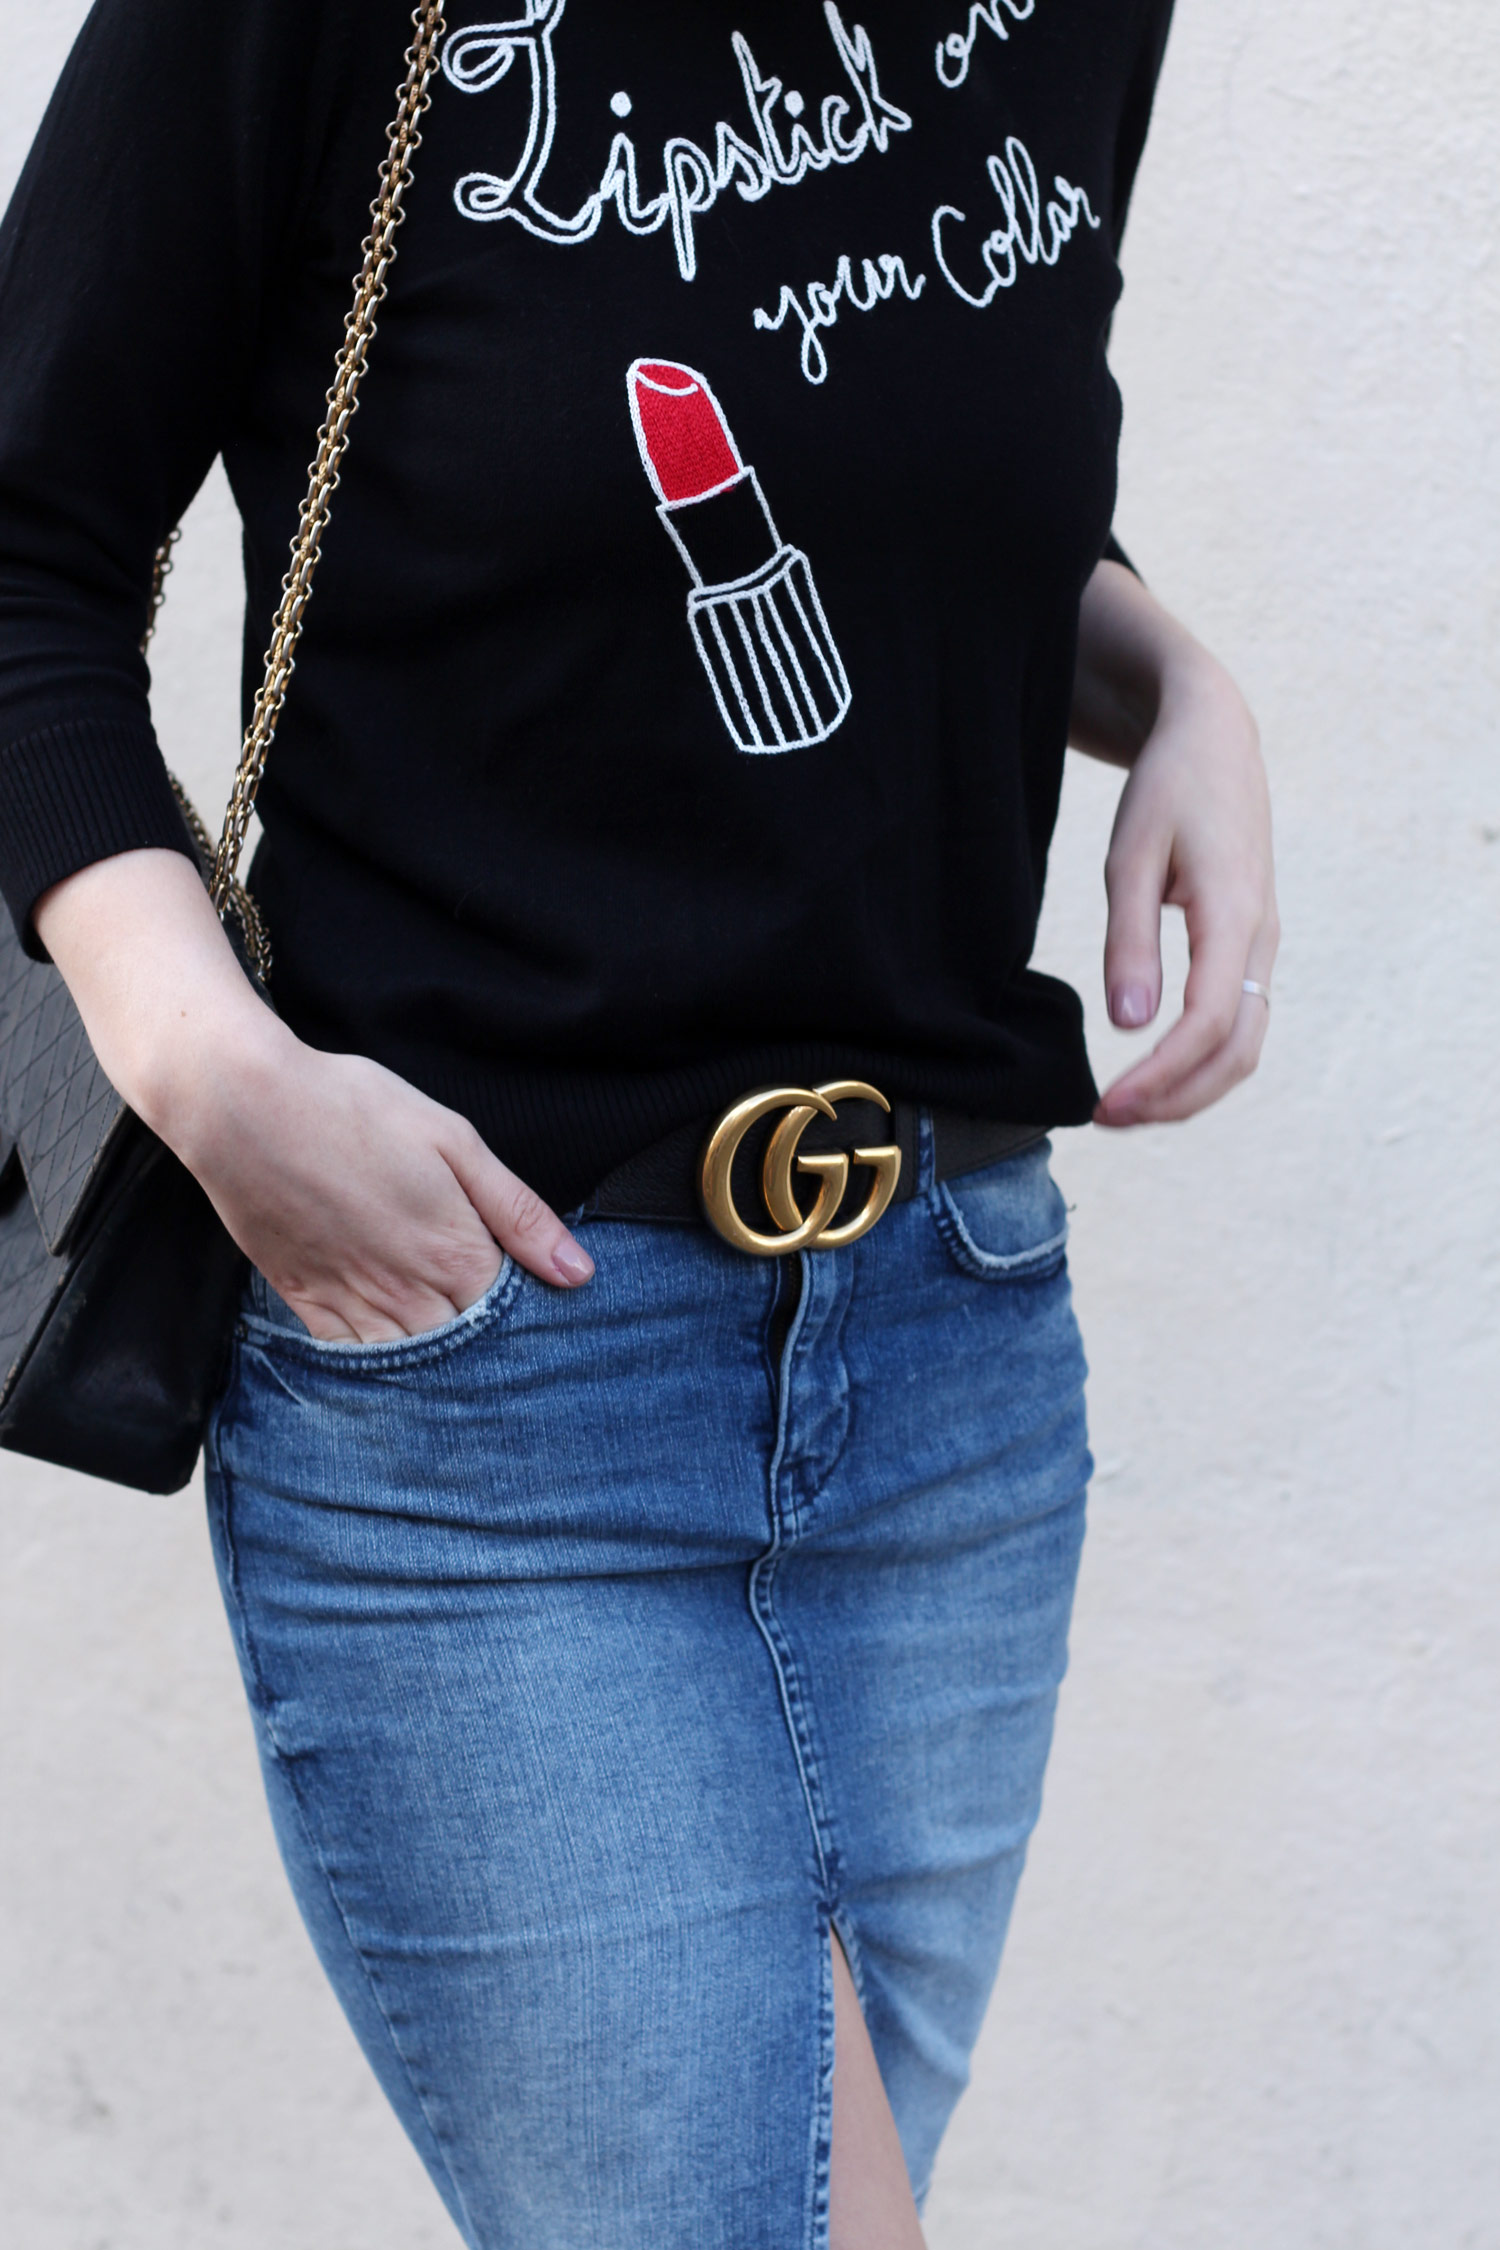 joanie-clothing-slogan-jumper-denim-skirt-vintage-chanel-12